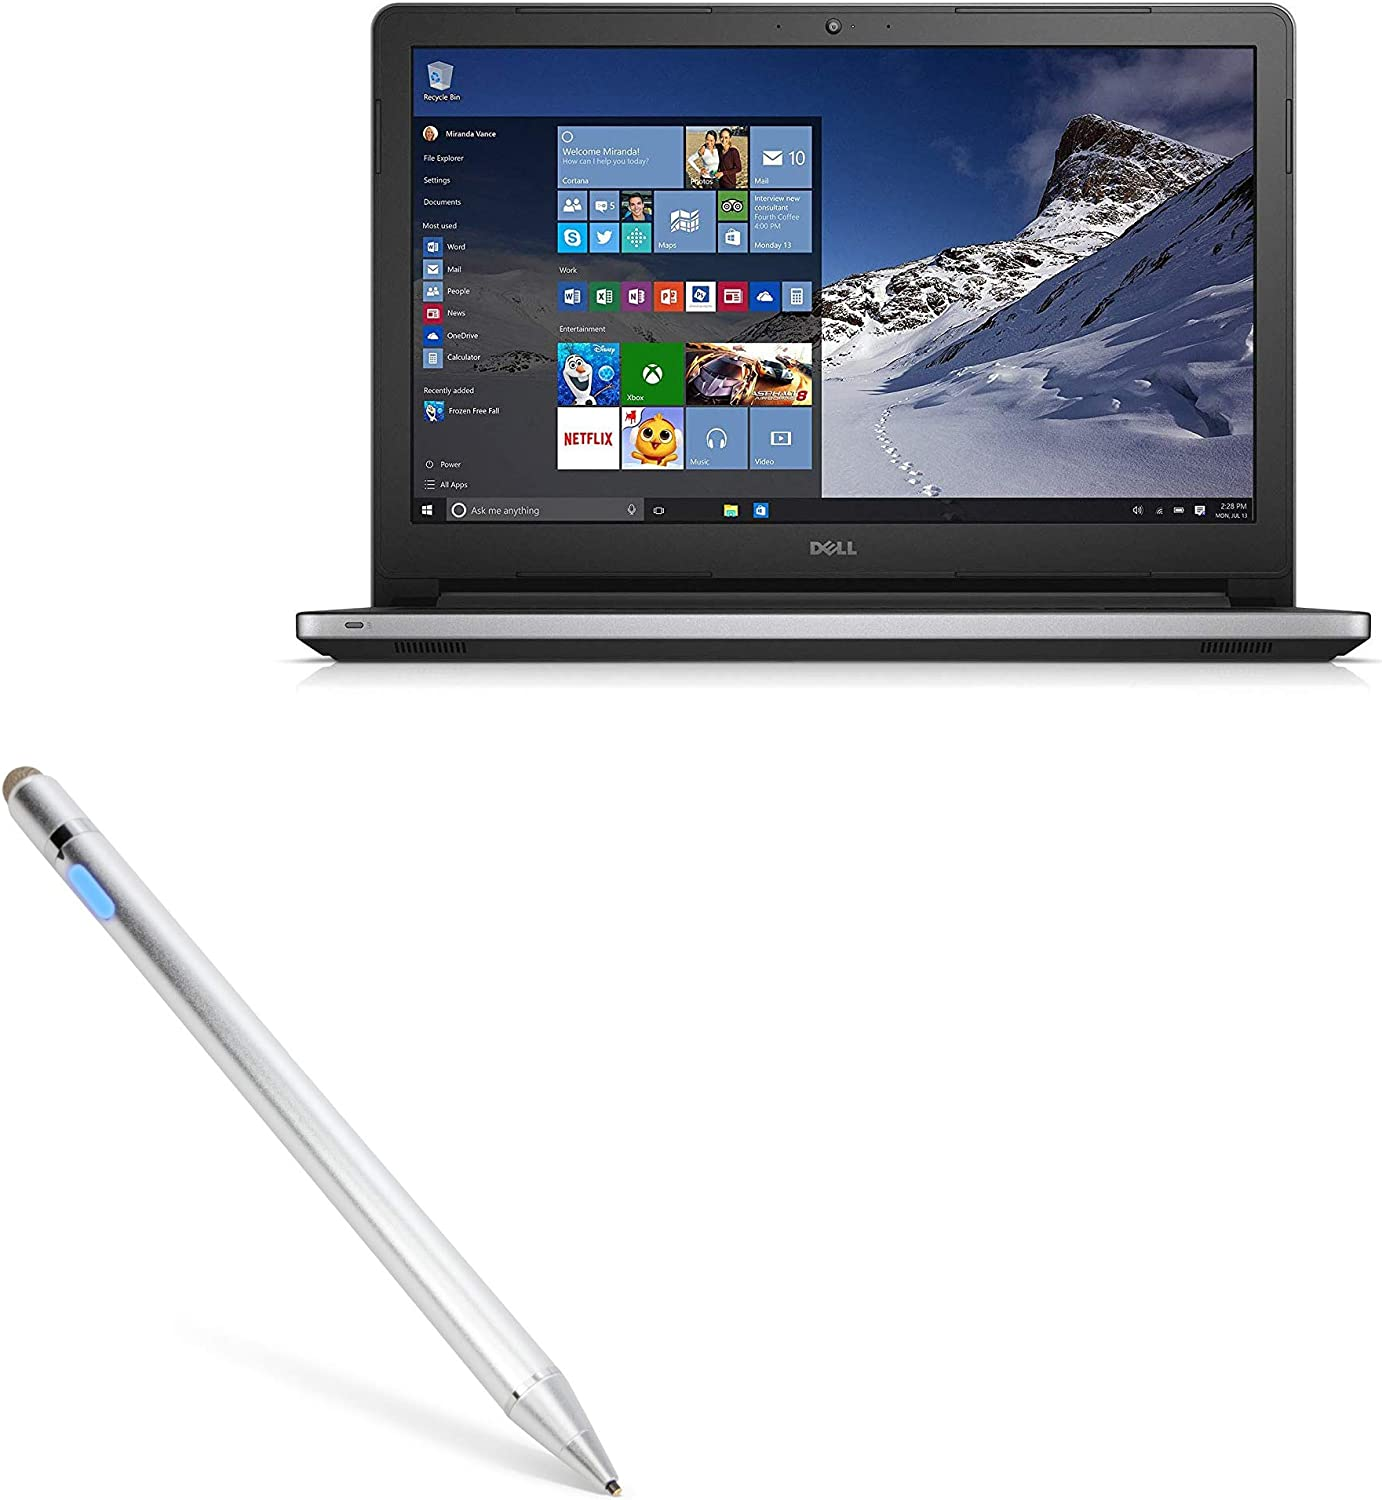 Dell Inspiron 15 5000 with Touchscreen (15 in) Stylus Pen, BoxWave [AccuPoint Active Stylus] Electronic Stylus with Ultra Fine Tip for Dell Inspiron 15 5000 with Touchscreen (15 in) - Metallic Silver